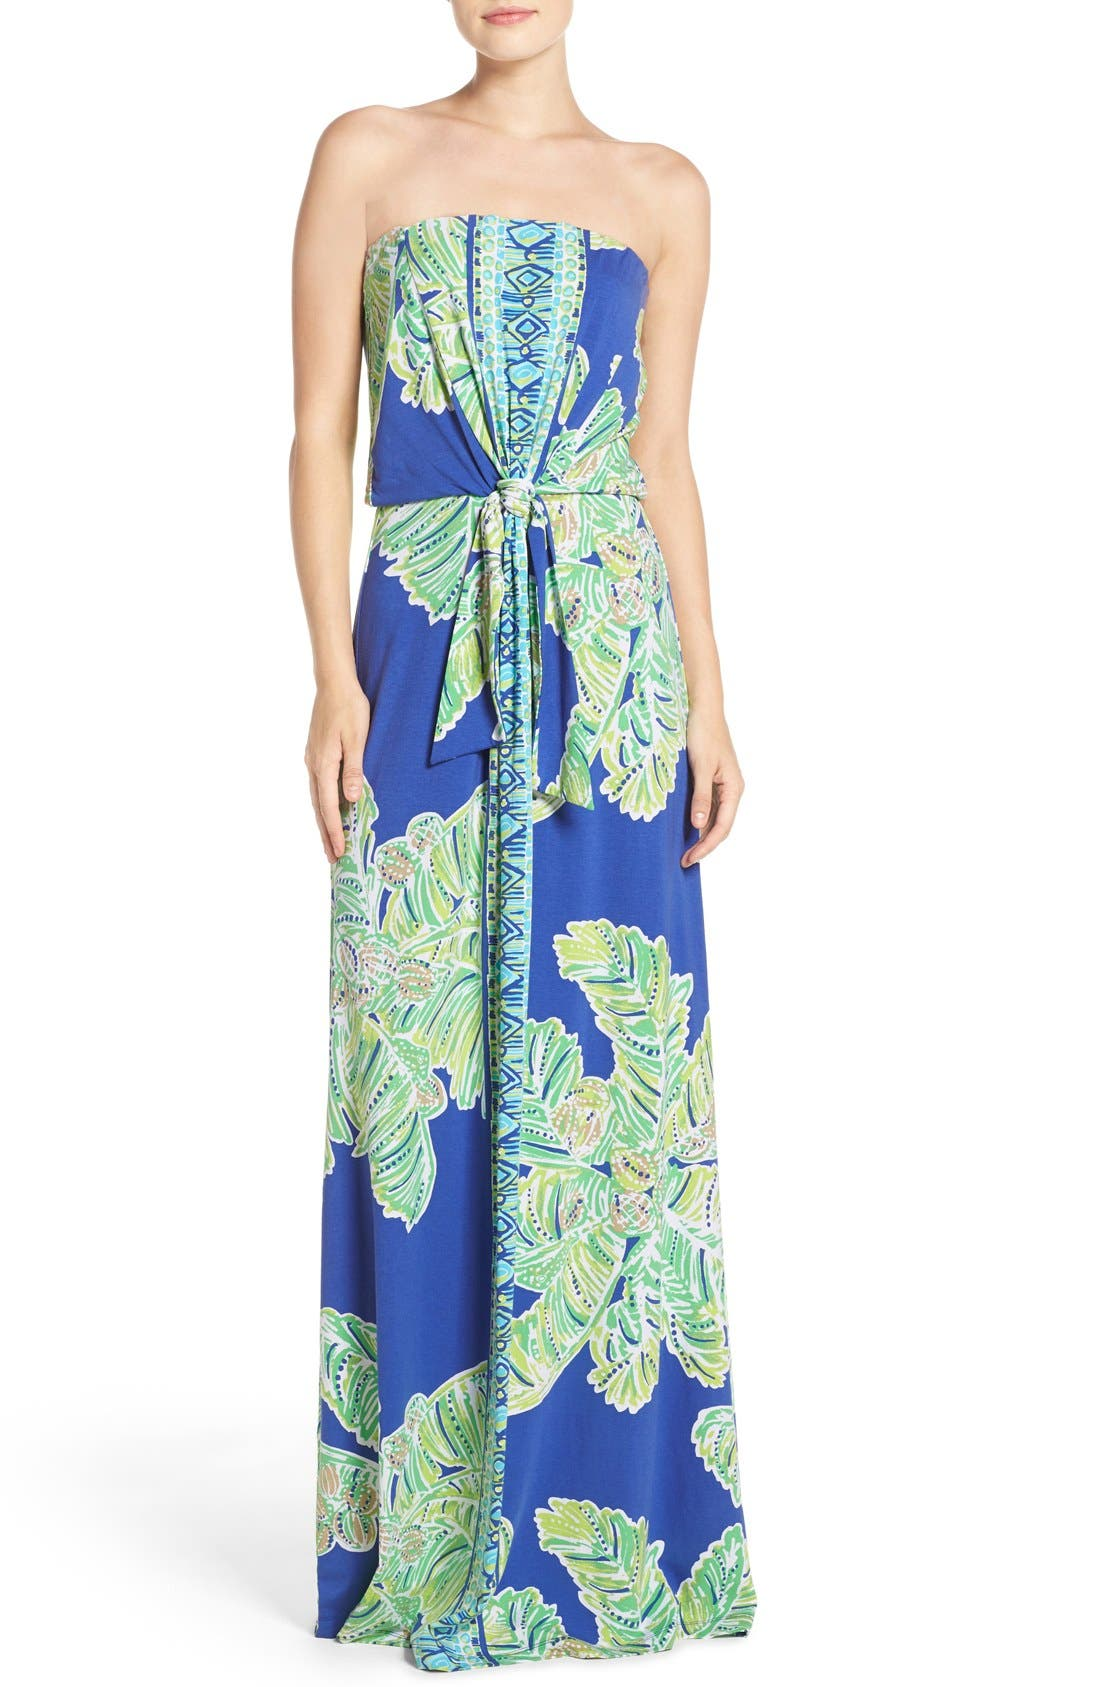 Alternate Image 1 Selected - Lilly Pulitzer® 'Rosalina' Strapless Maxi Dress